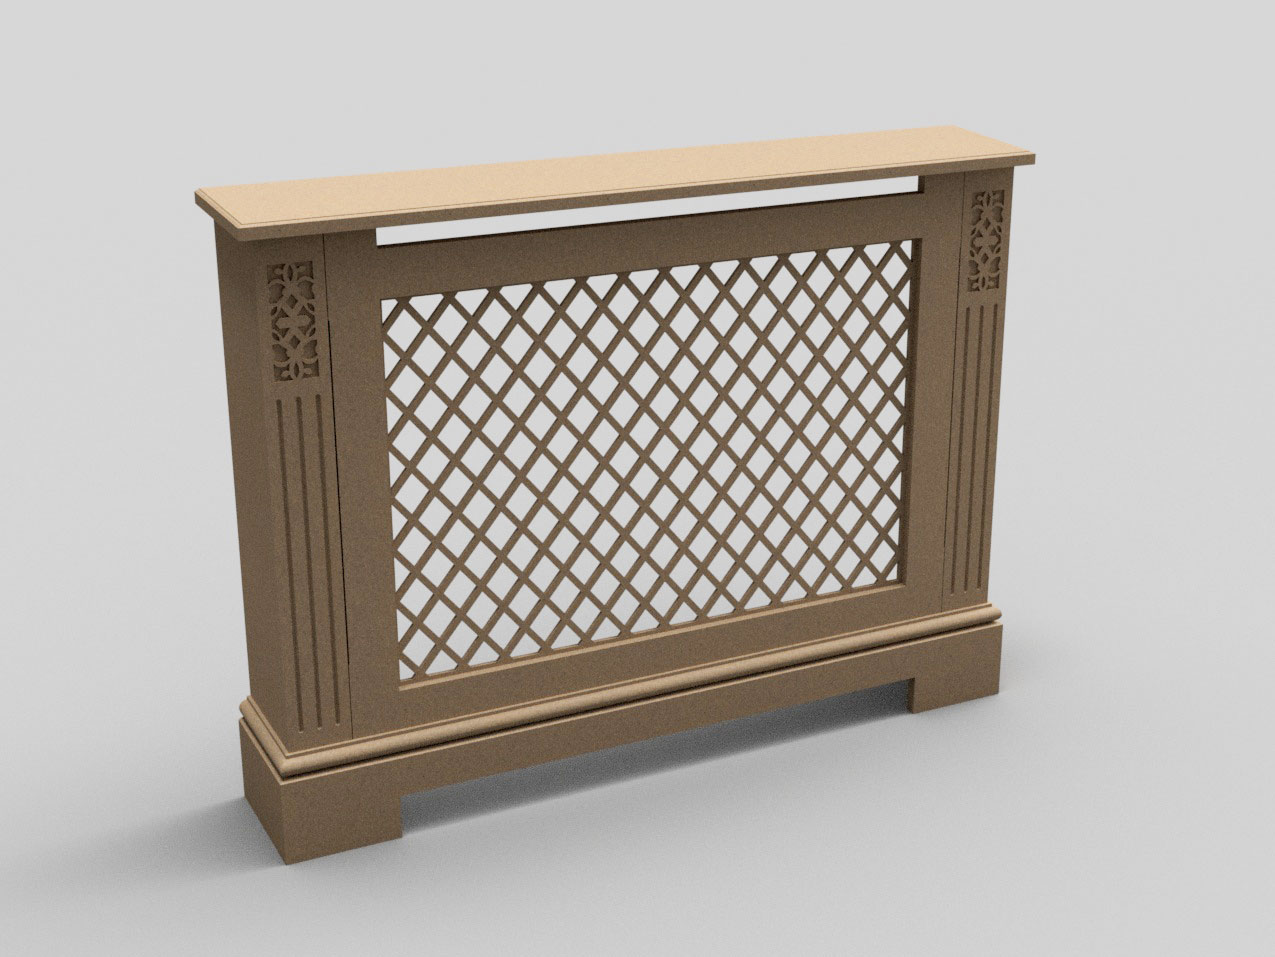 cebil radiator cover 3